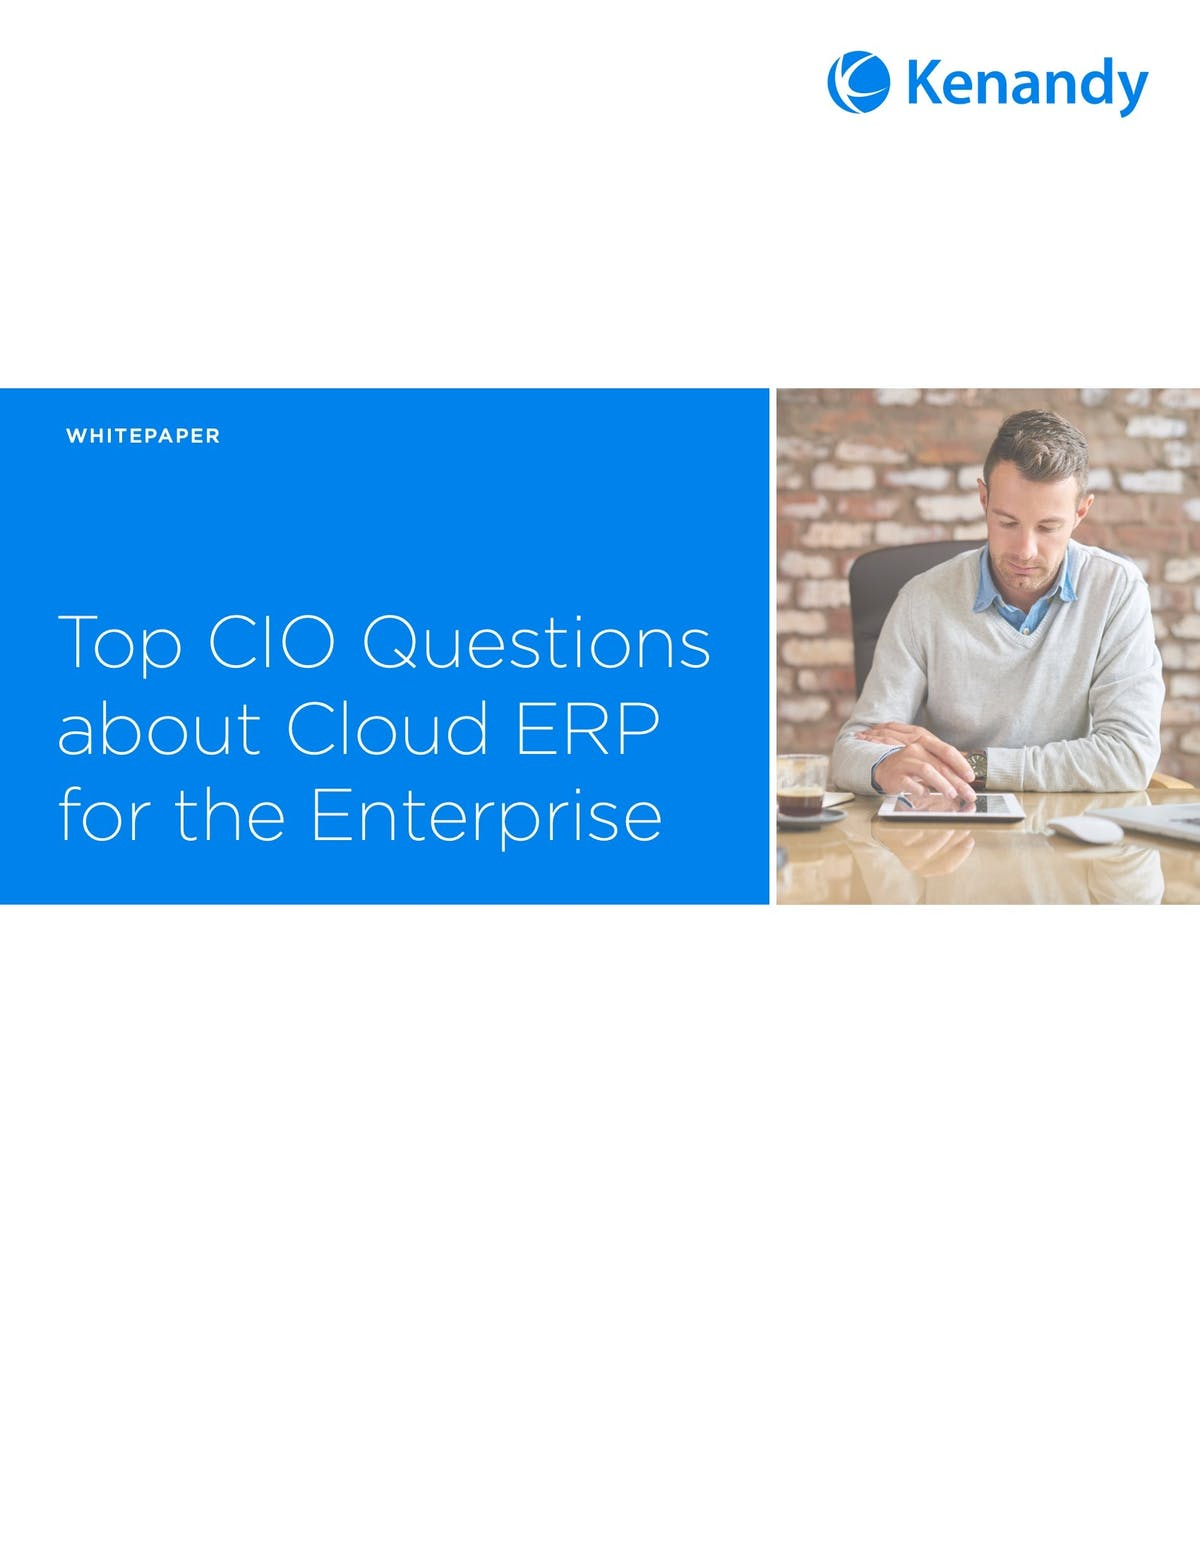 Kenandy ERP White Paper - Top CIO Questions About Cloud ERP for the Enterprise